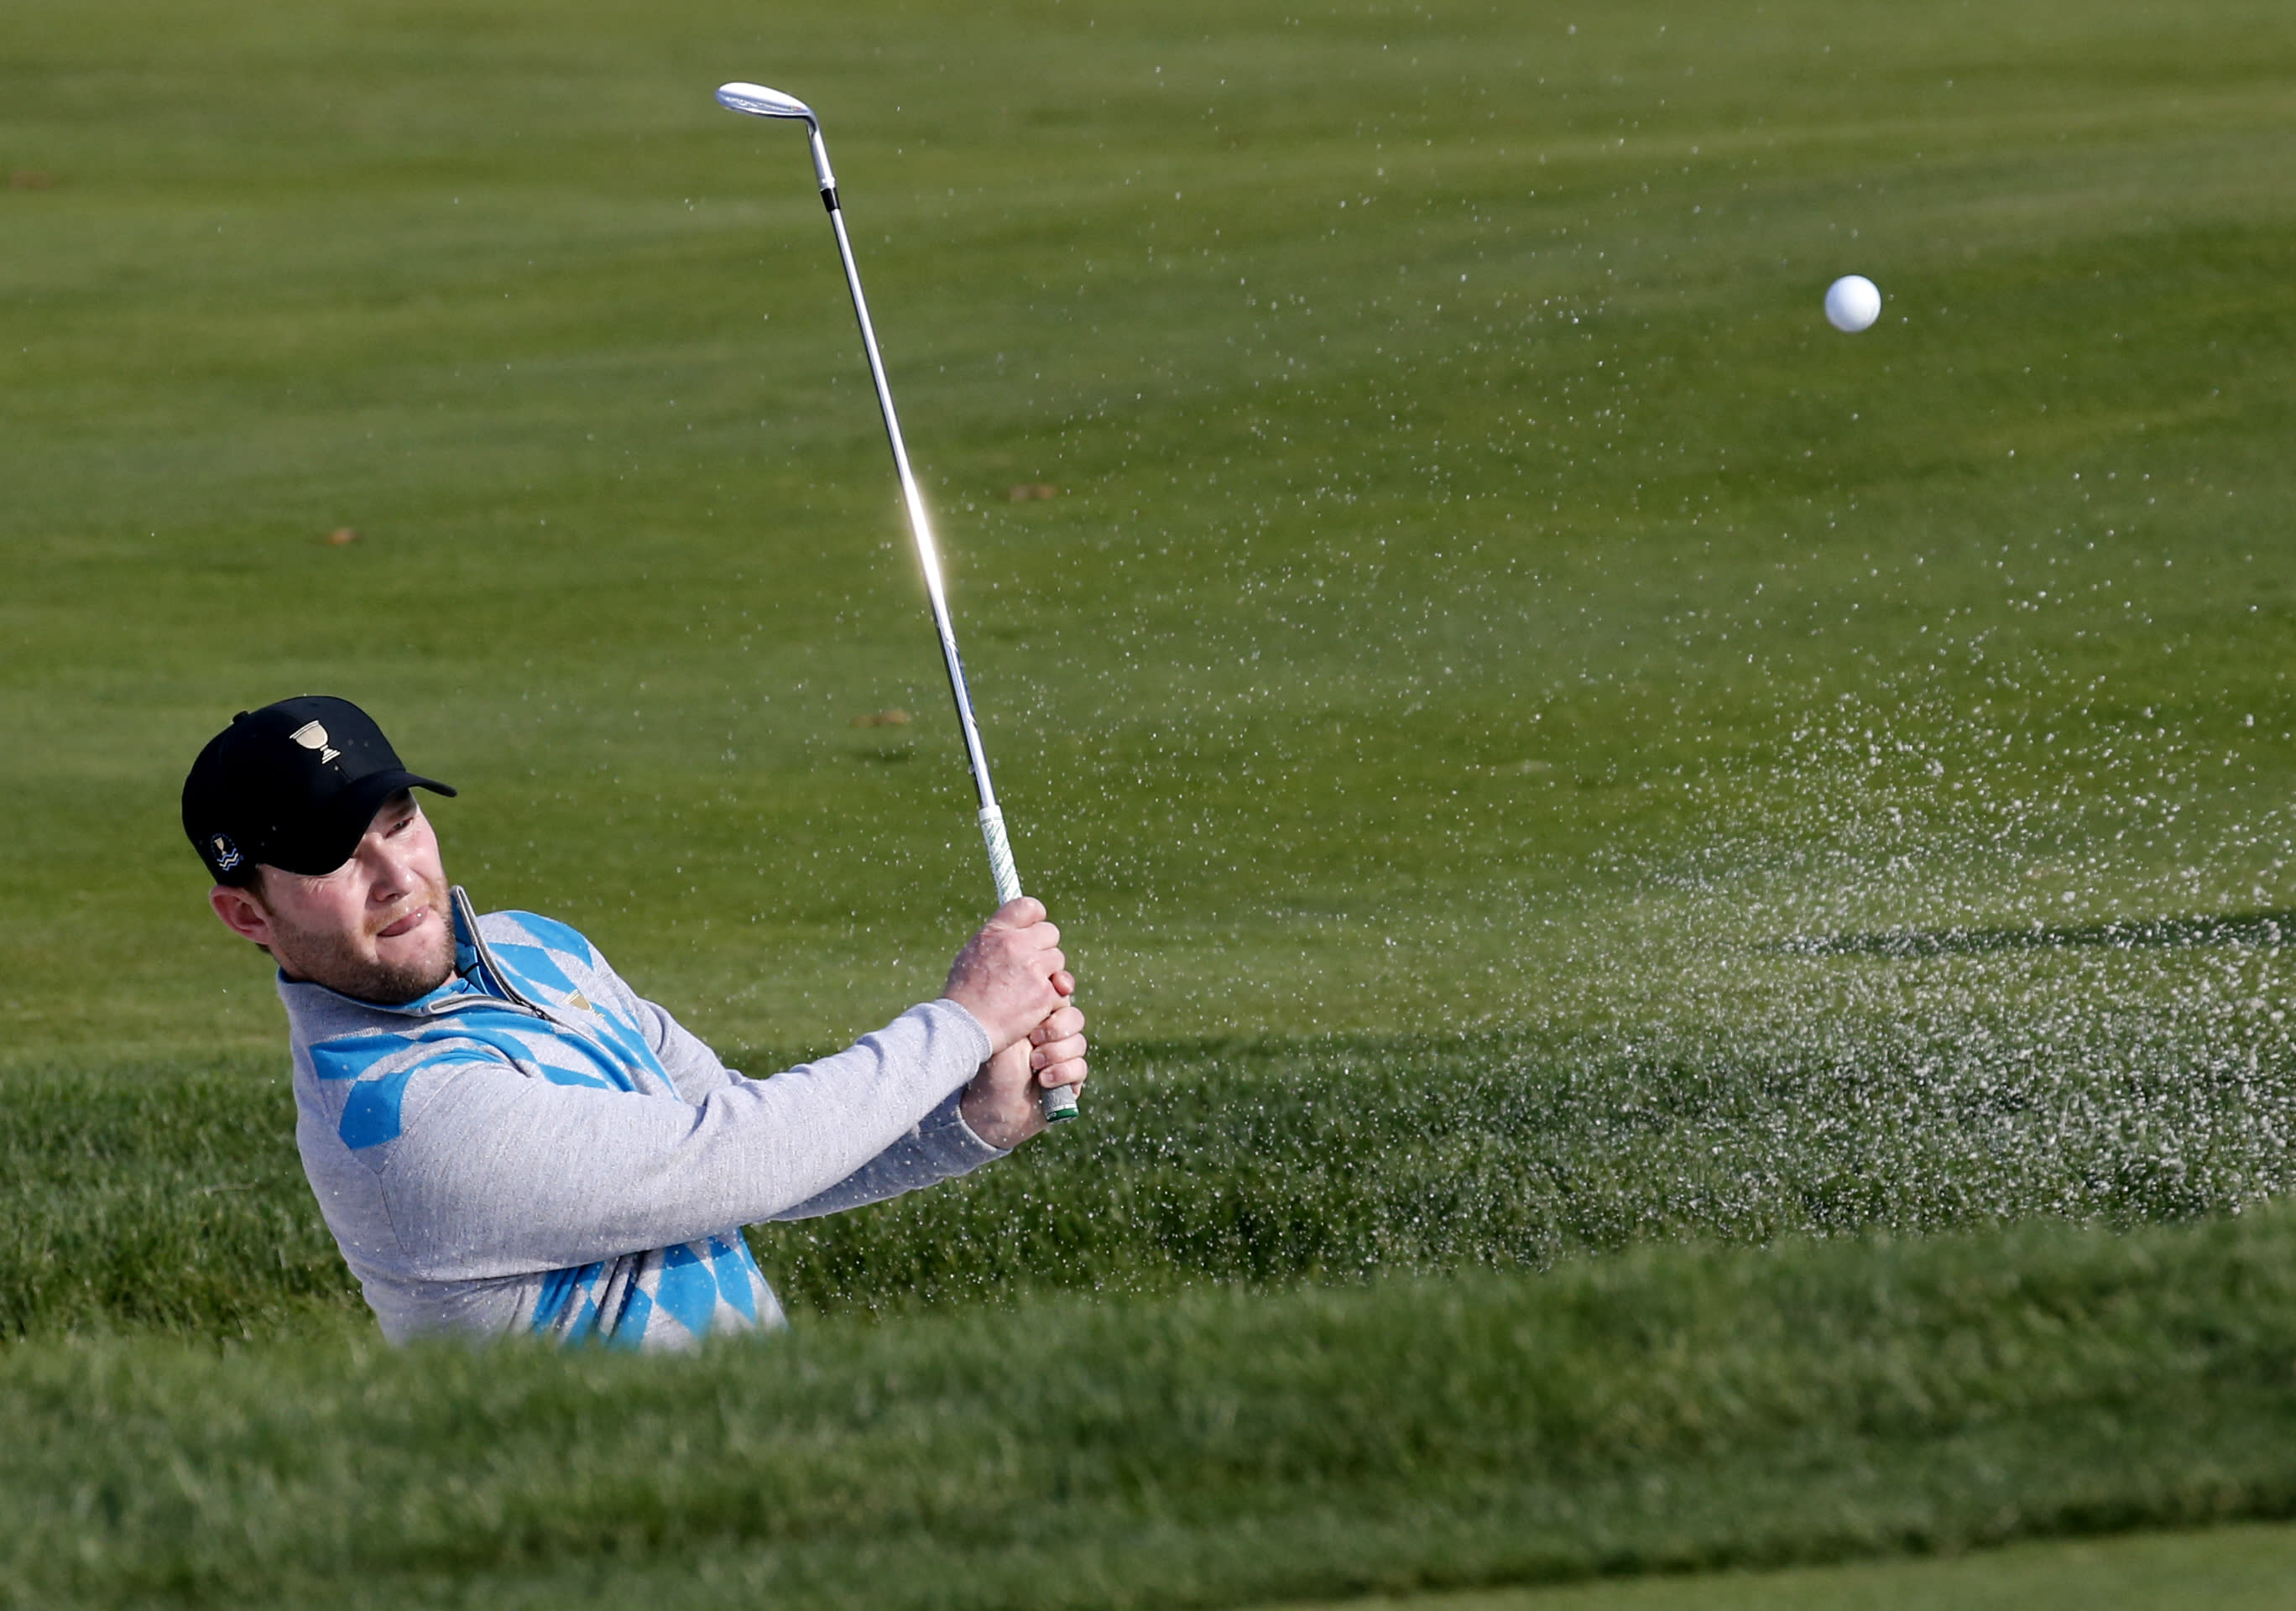 US clings to 1-point lead in Presidents Cup